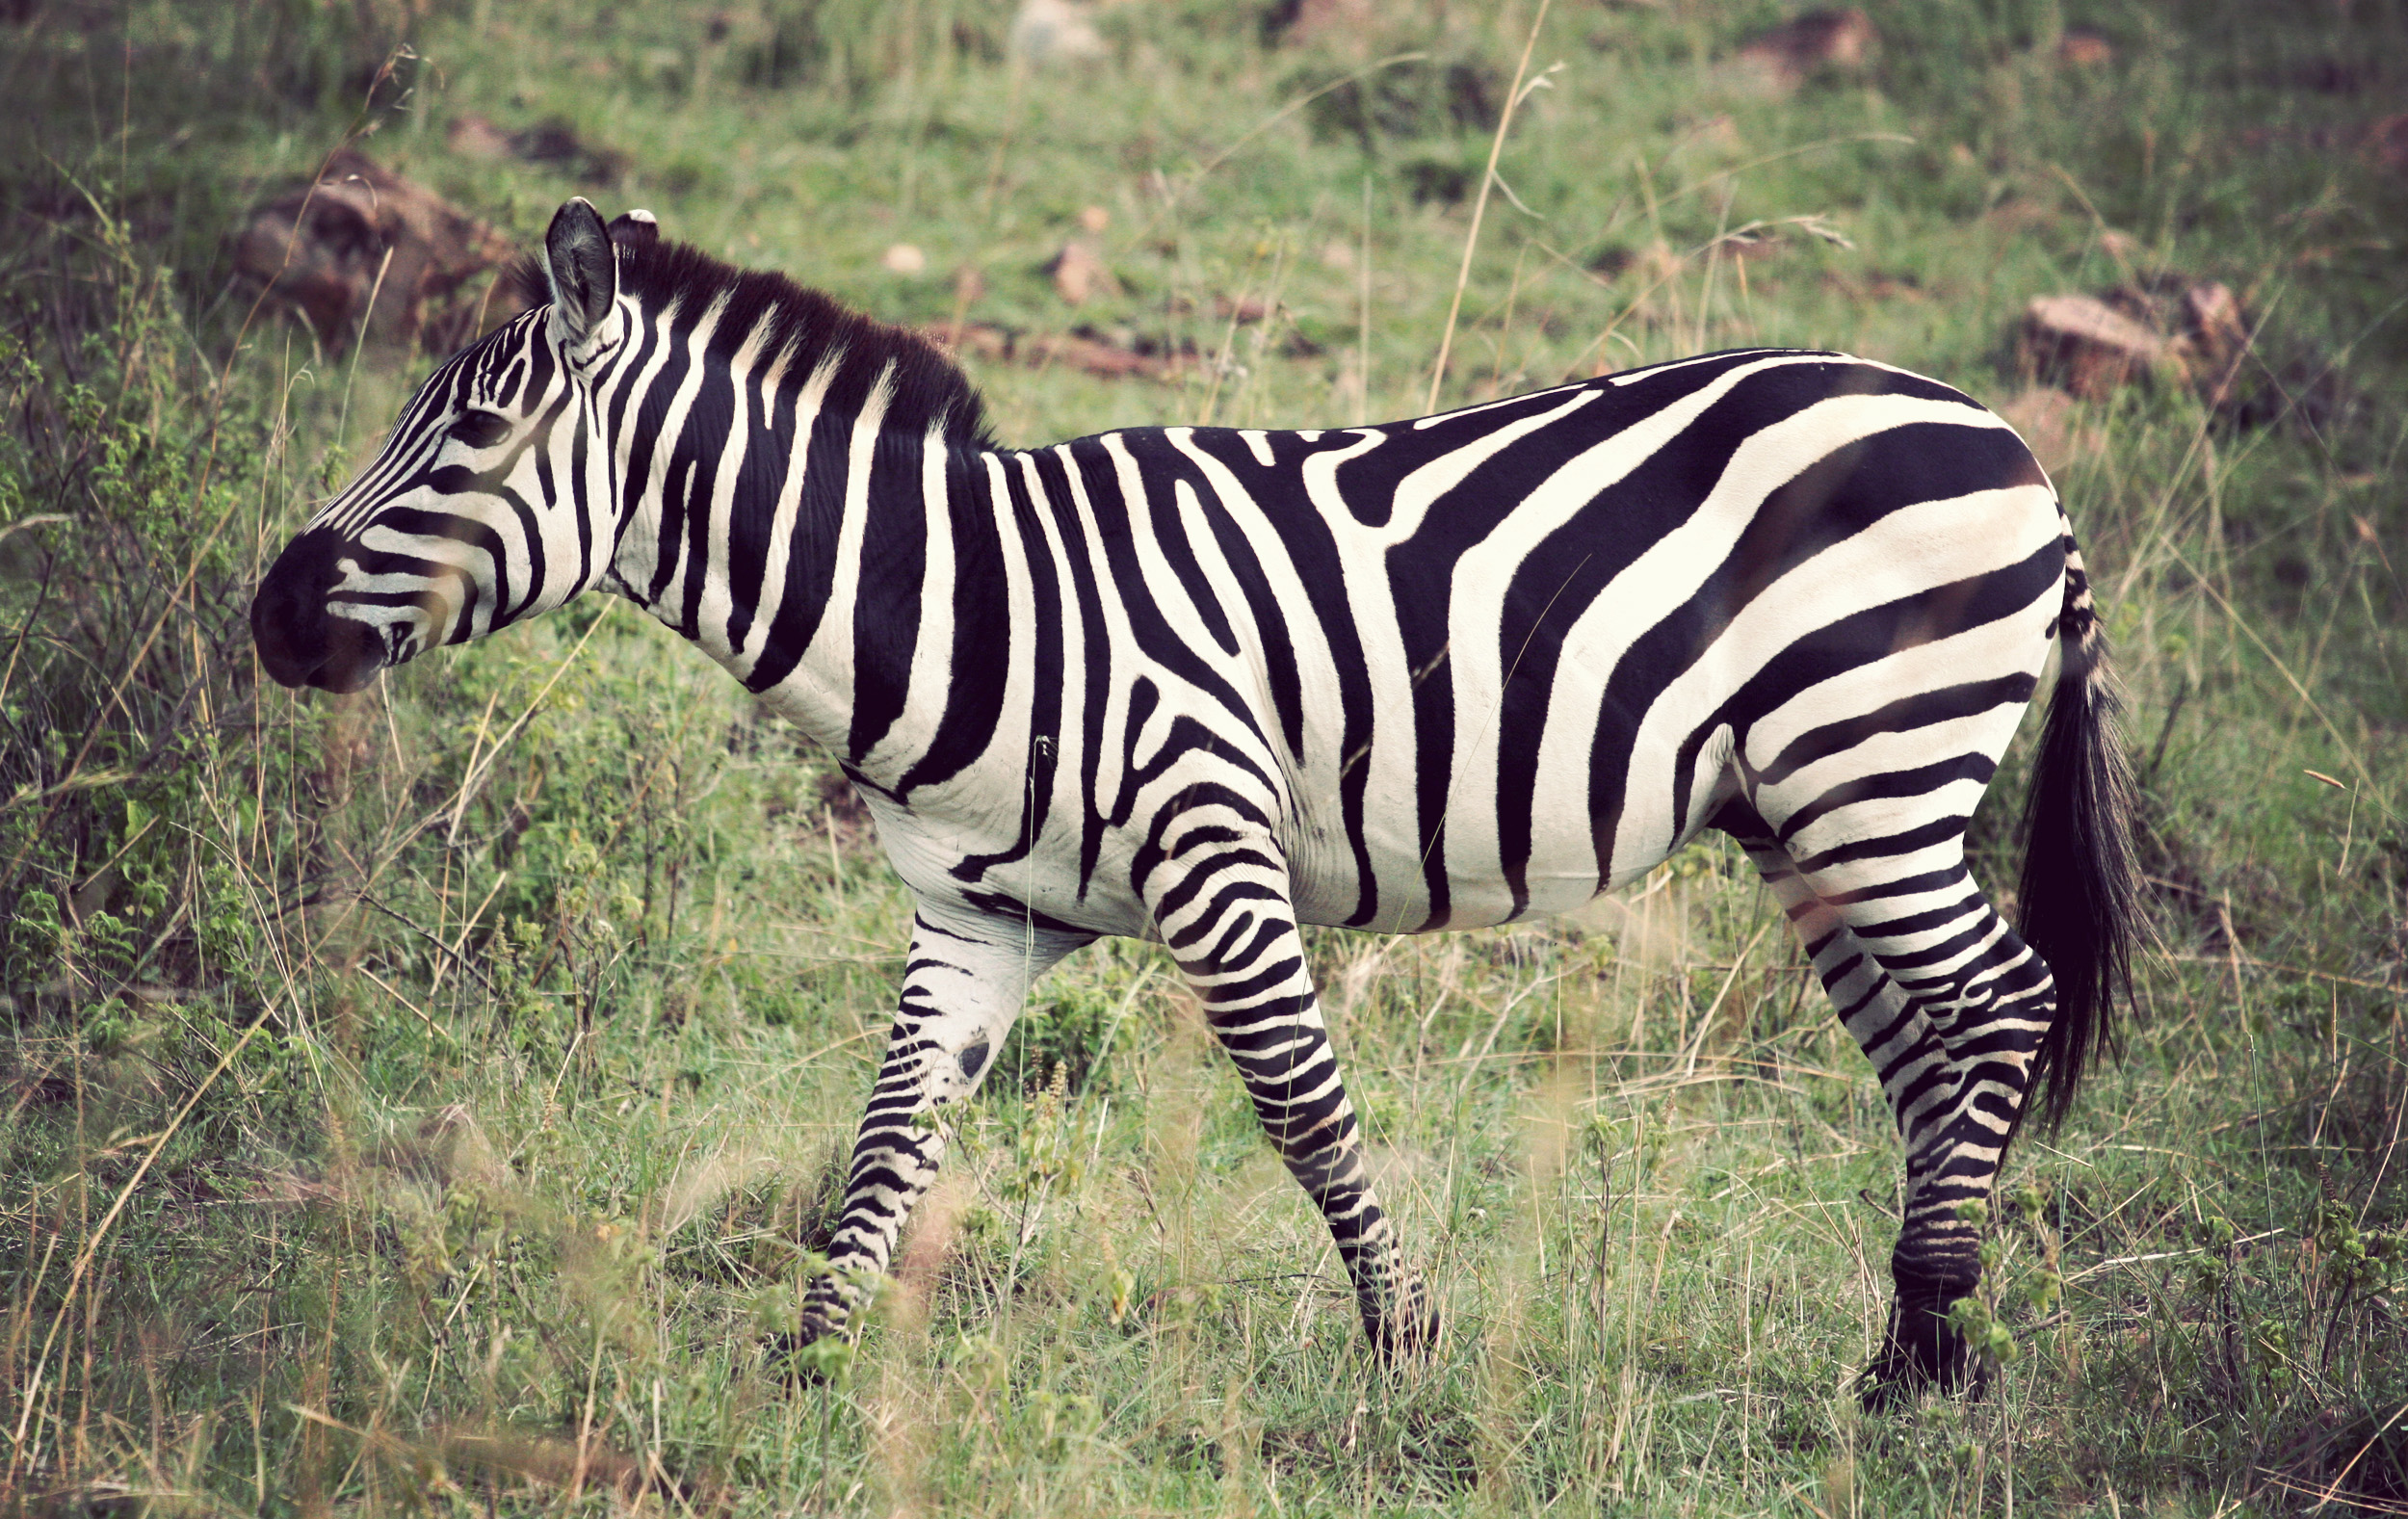 My best picture of a zebra so far!